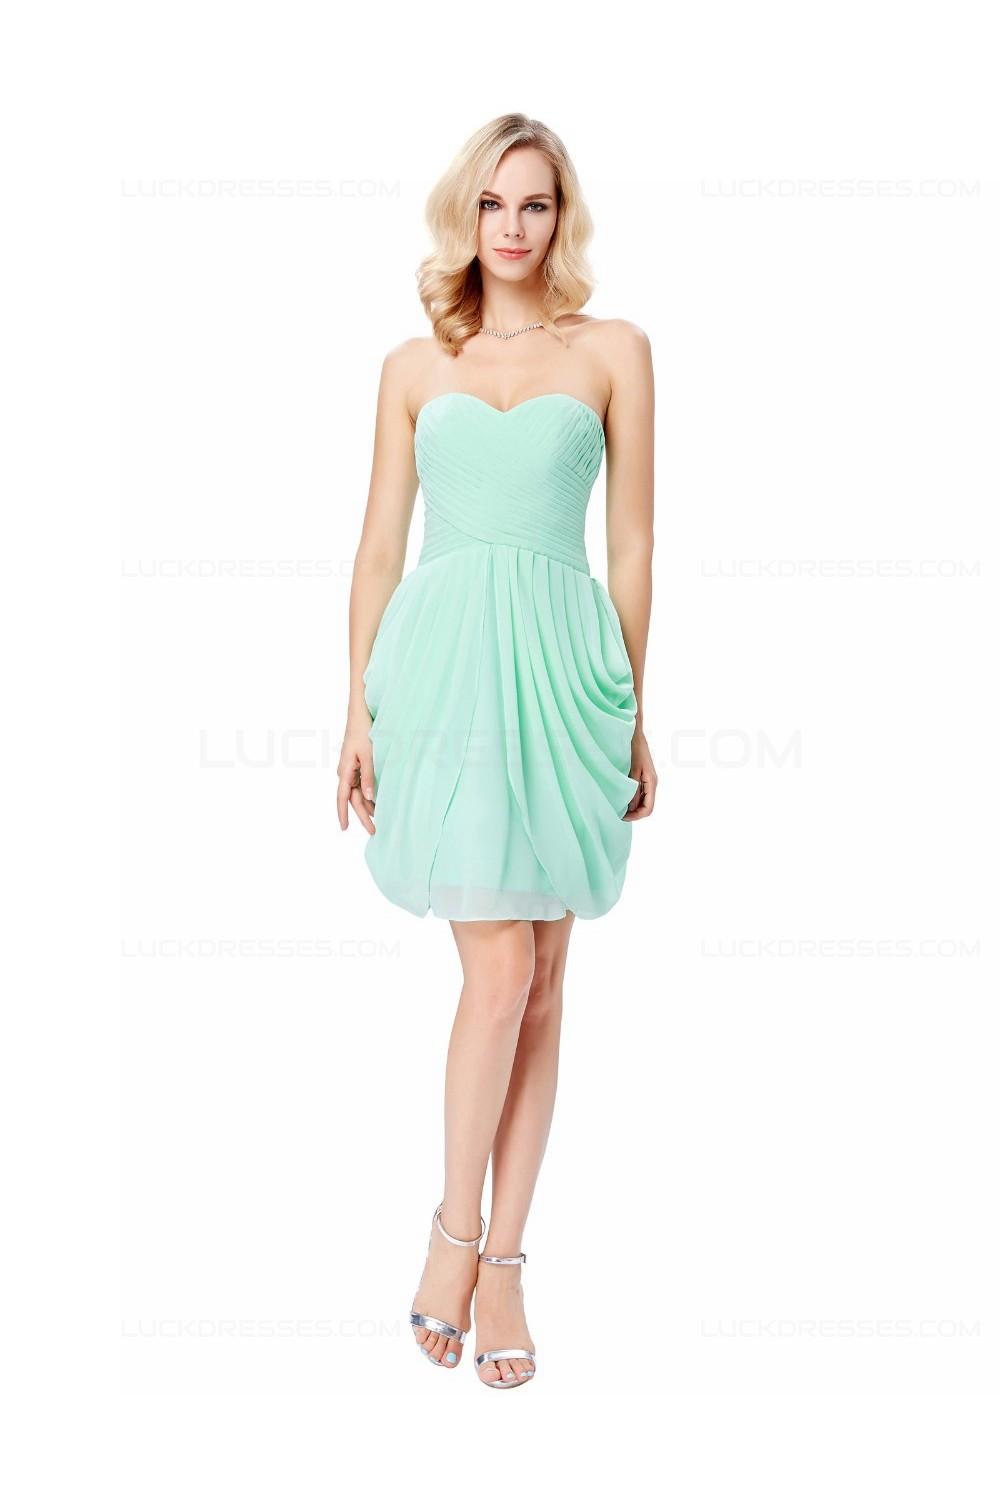 Short Mint Green Chiffon Prom Dresses Party Evening Gowns